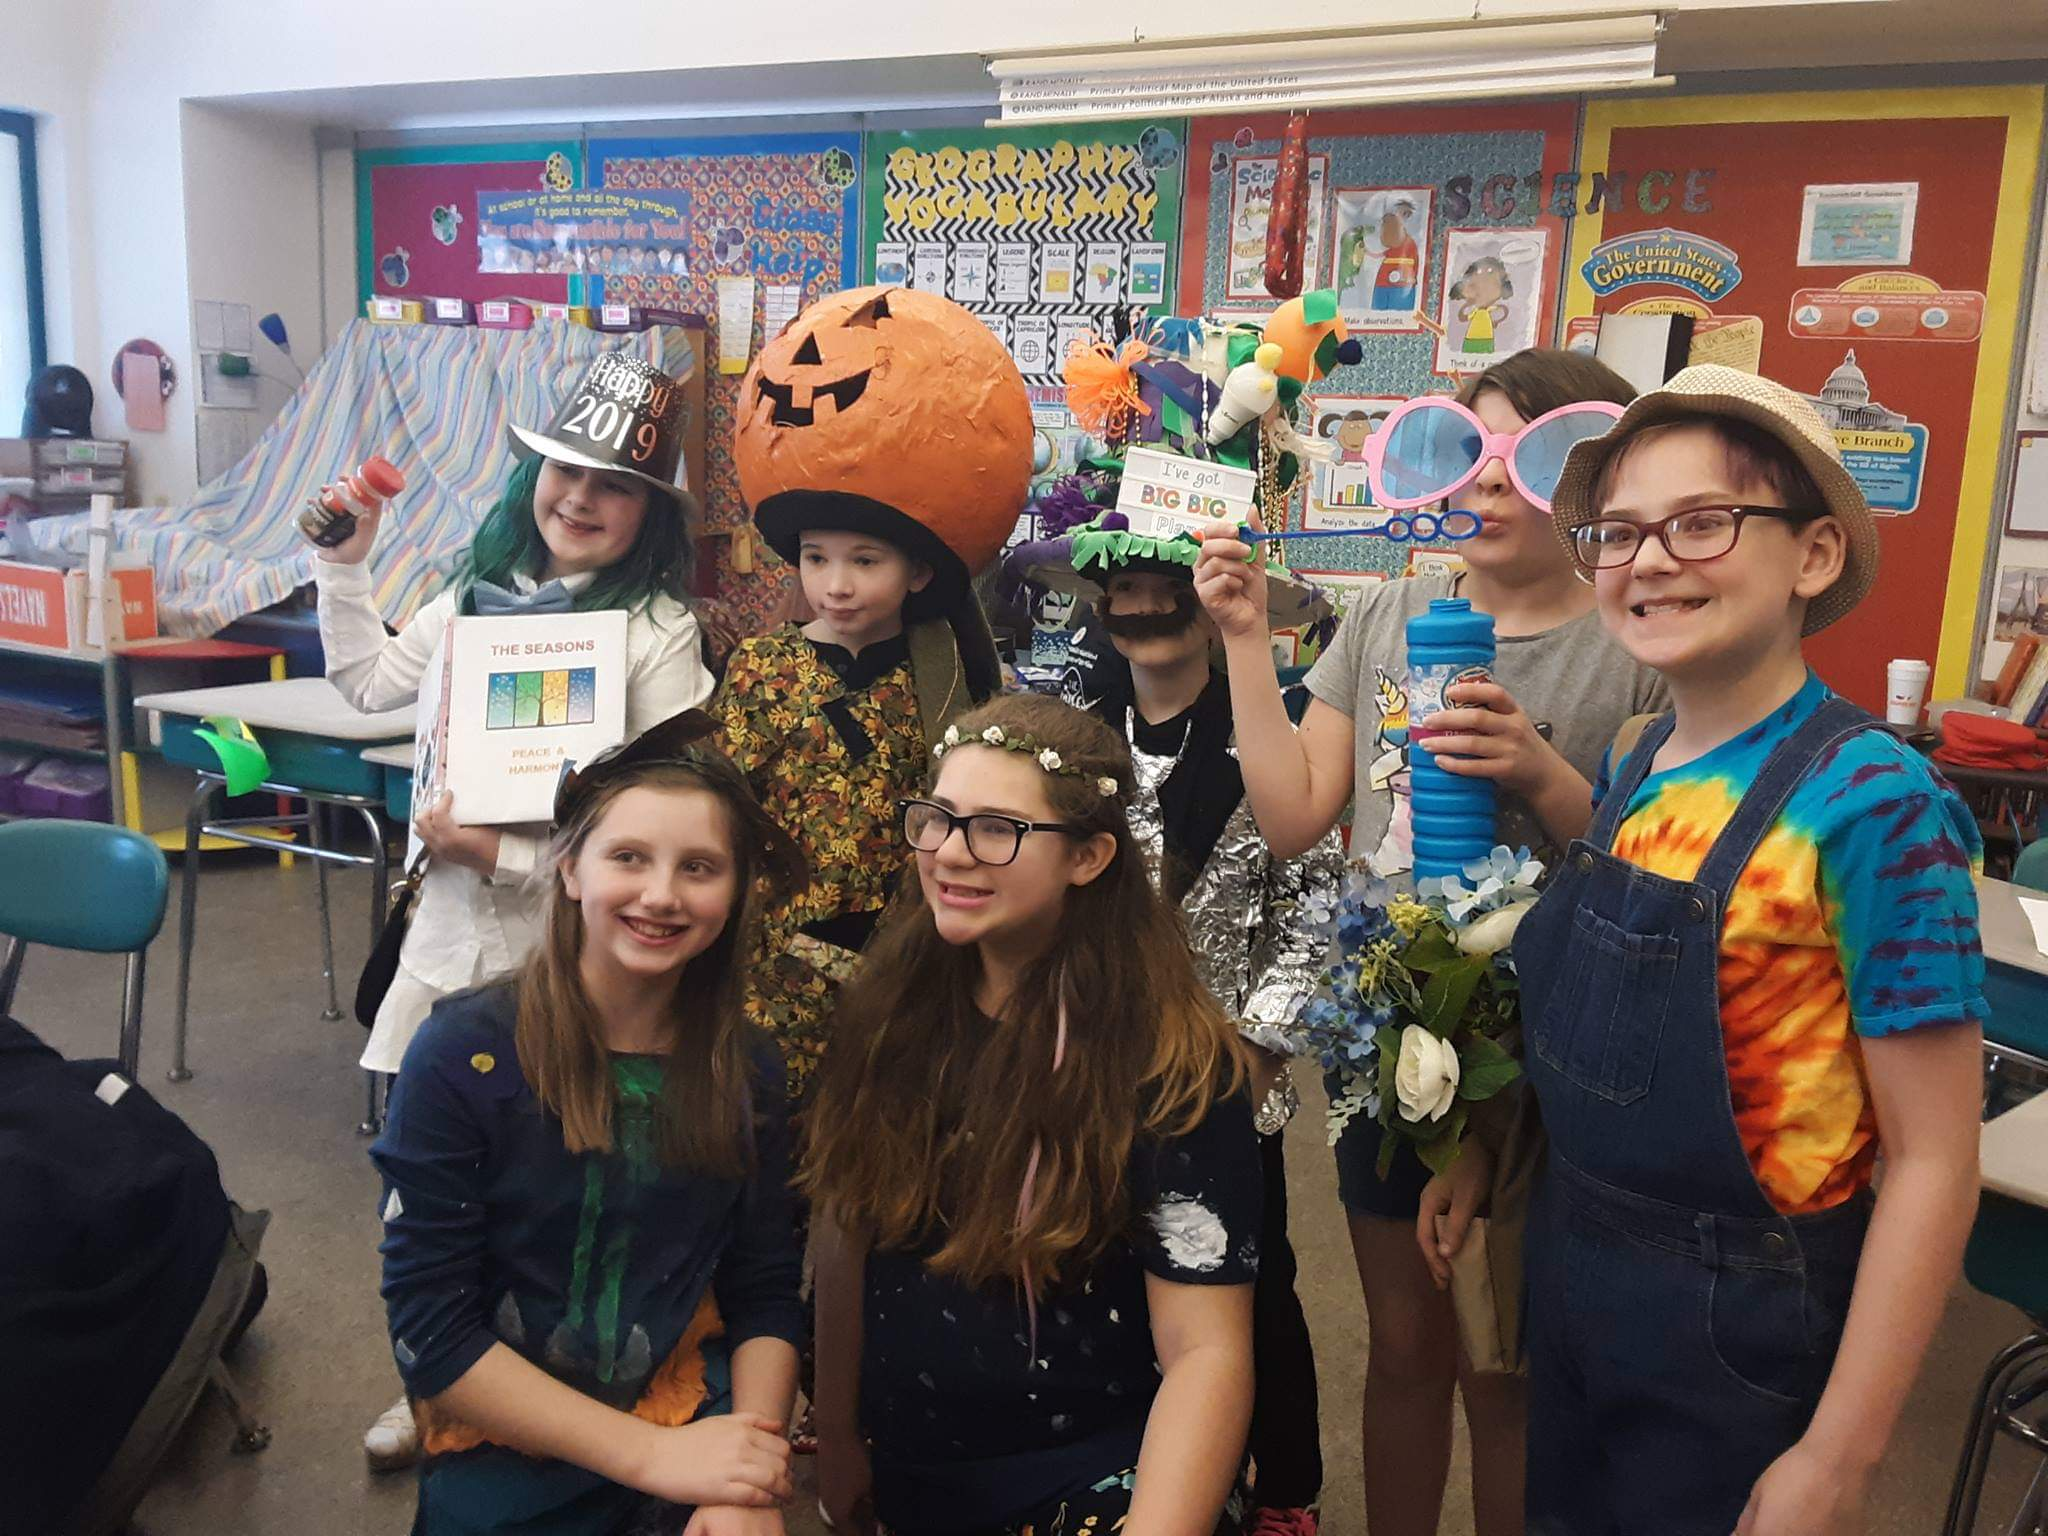 team dressed up as the four seasons, Mother Nature, and Mother Peace